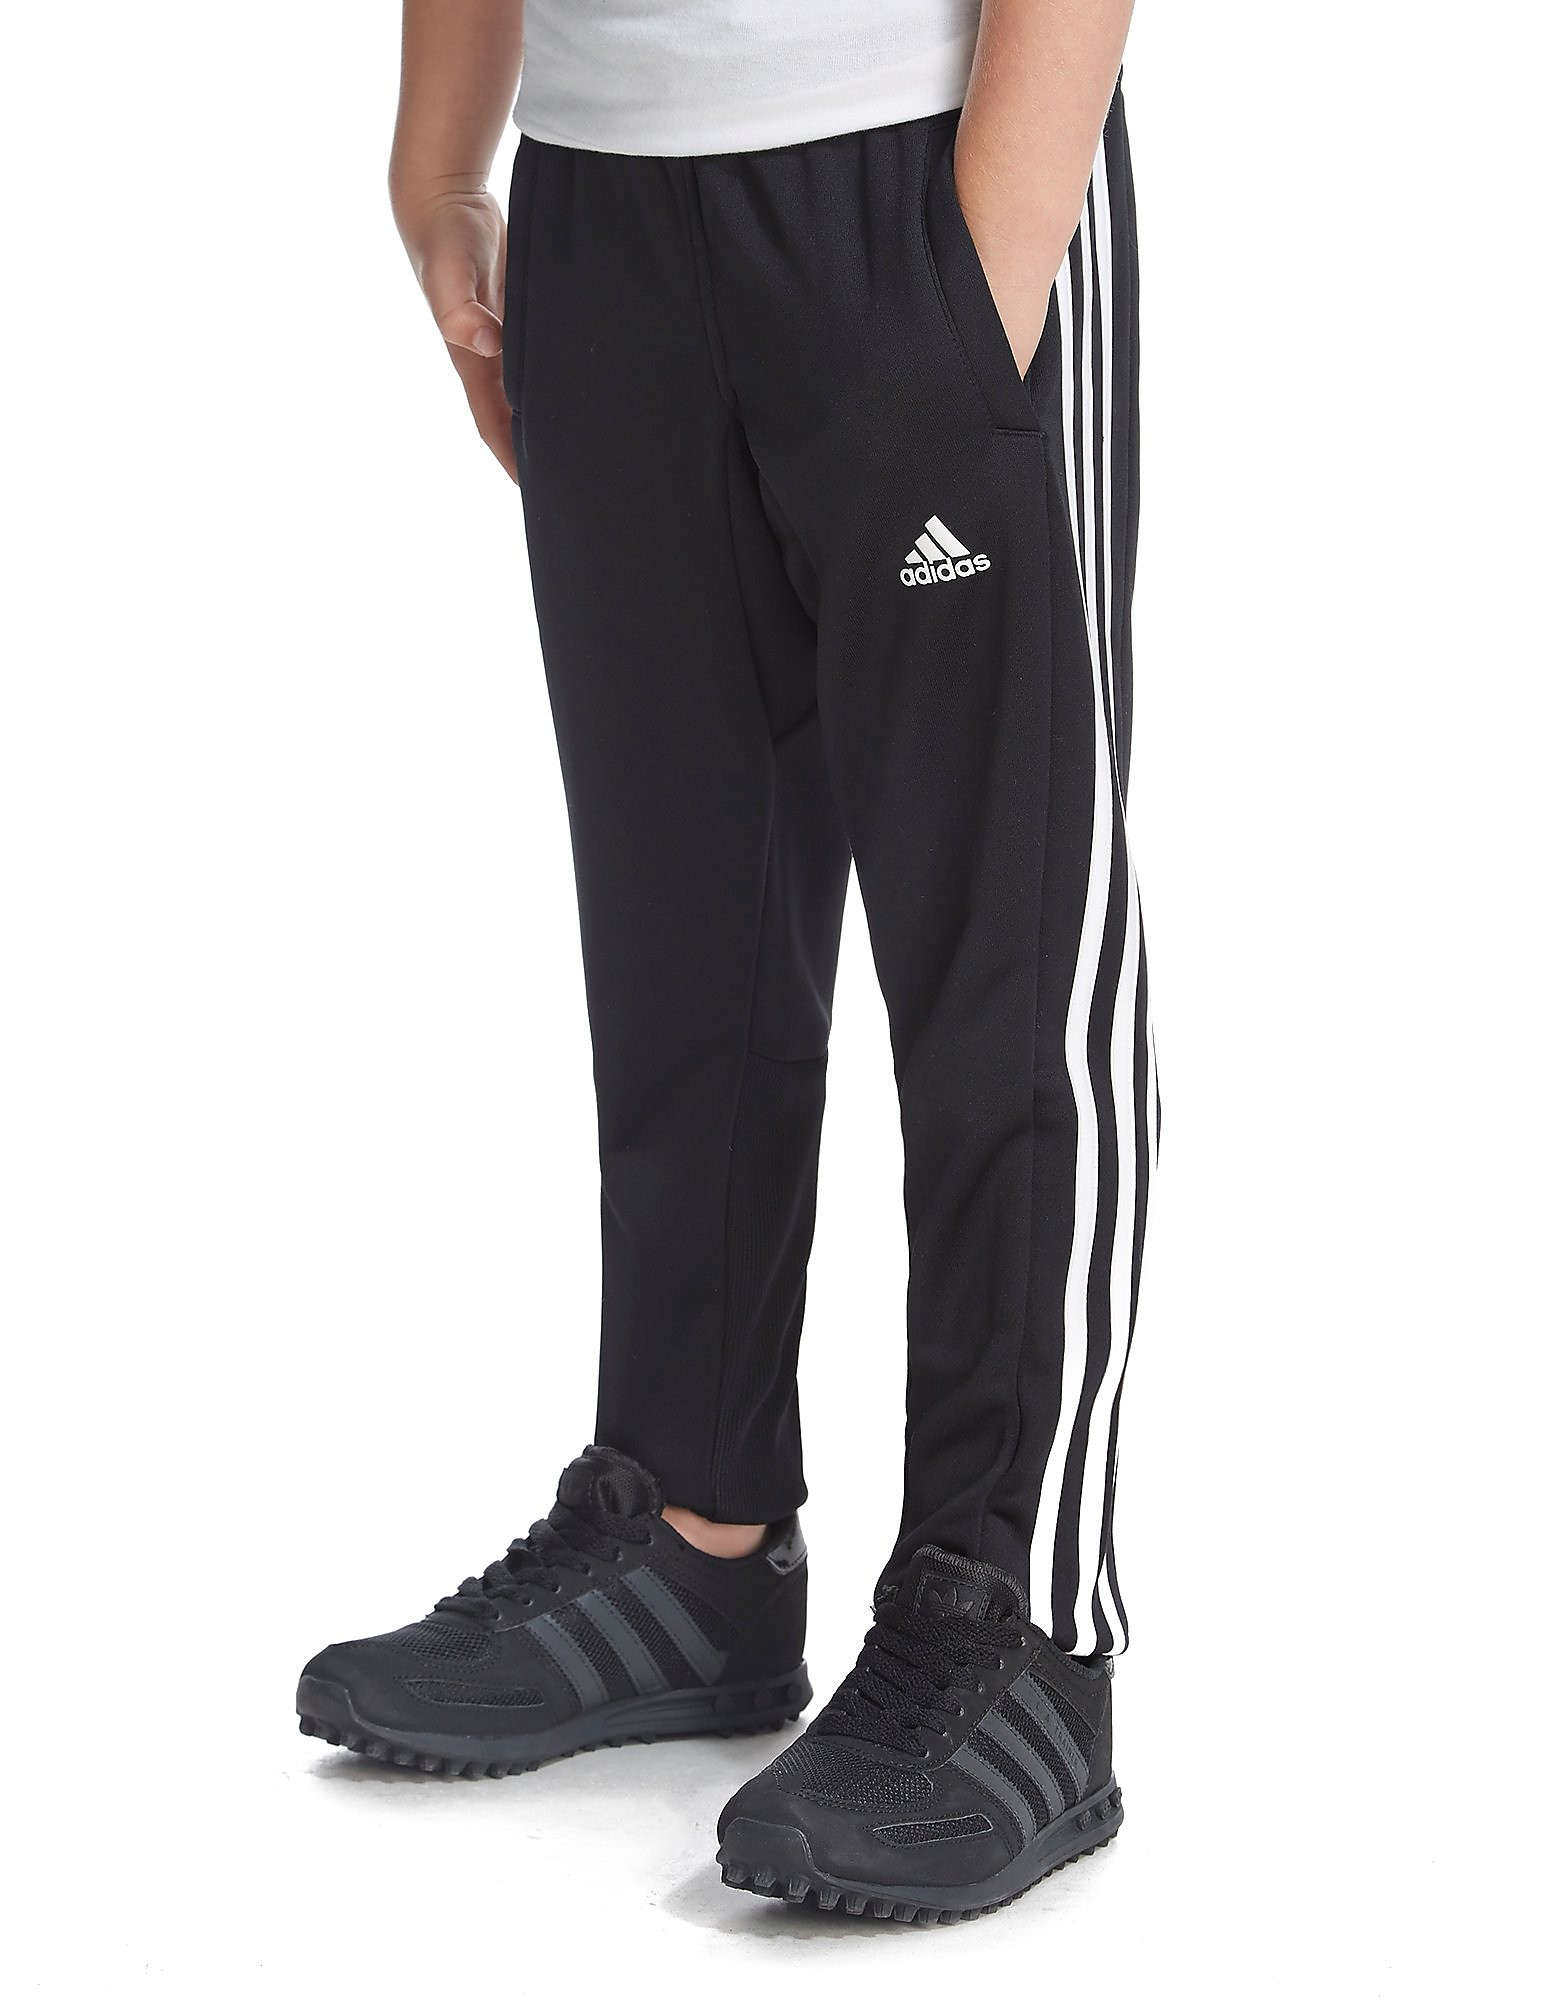 adidas Football Pants Children